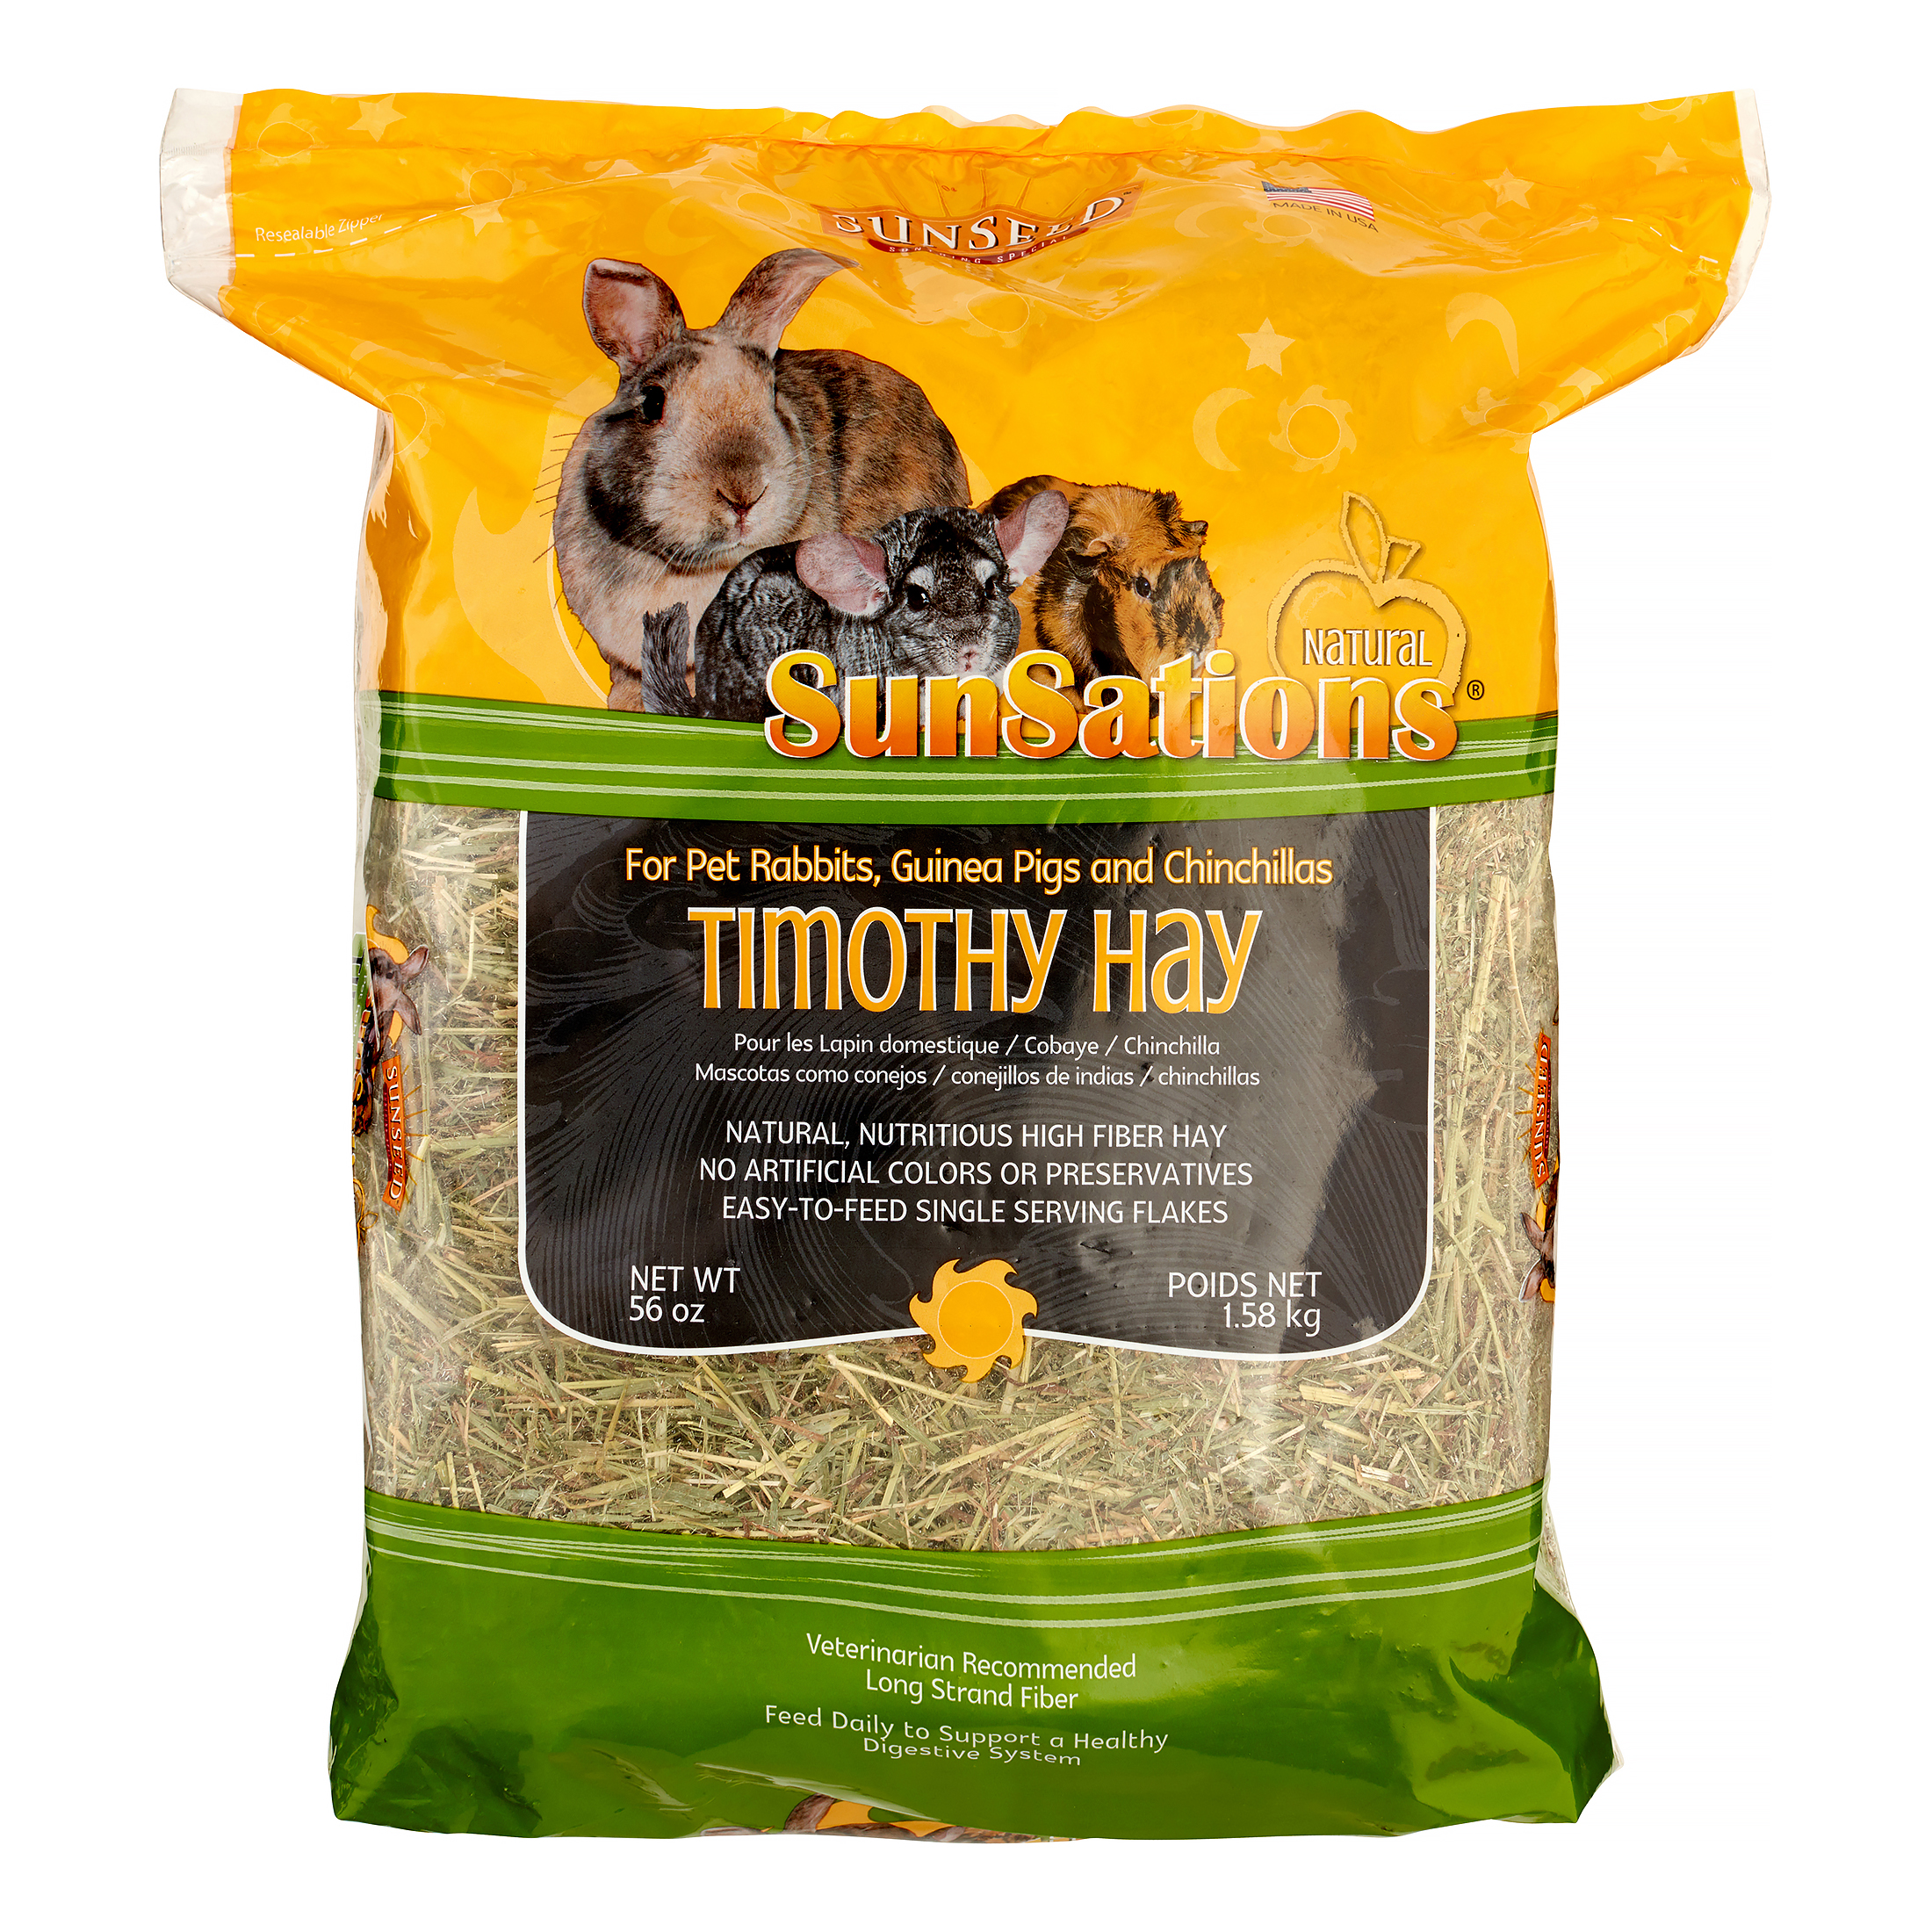 Sunseed Sunaturals Spring Harvest Timothy Hay Dry Small Animal Food, 56 Oz